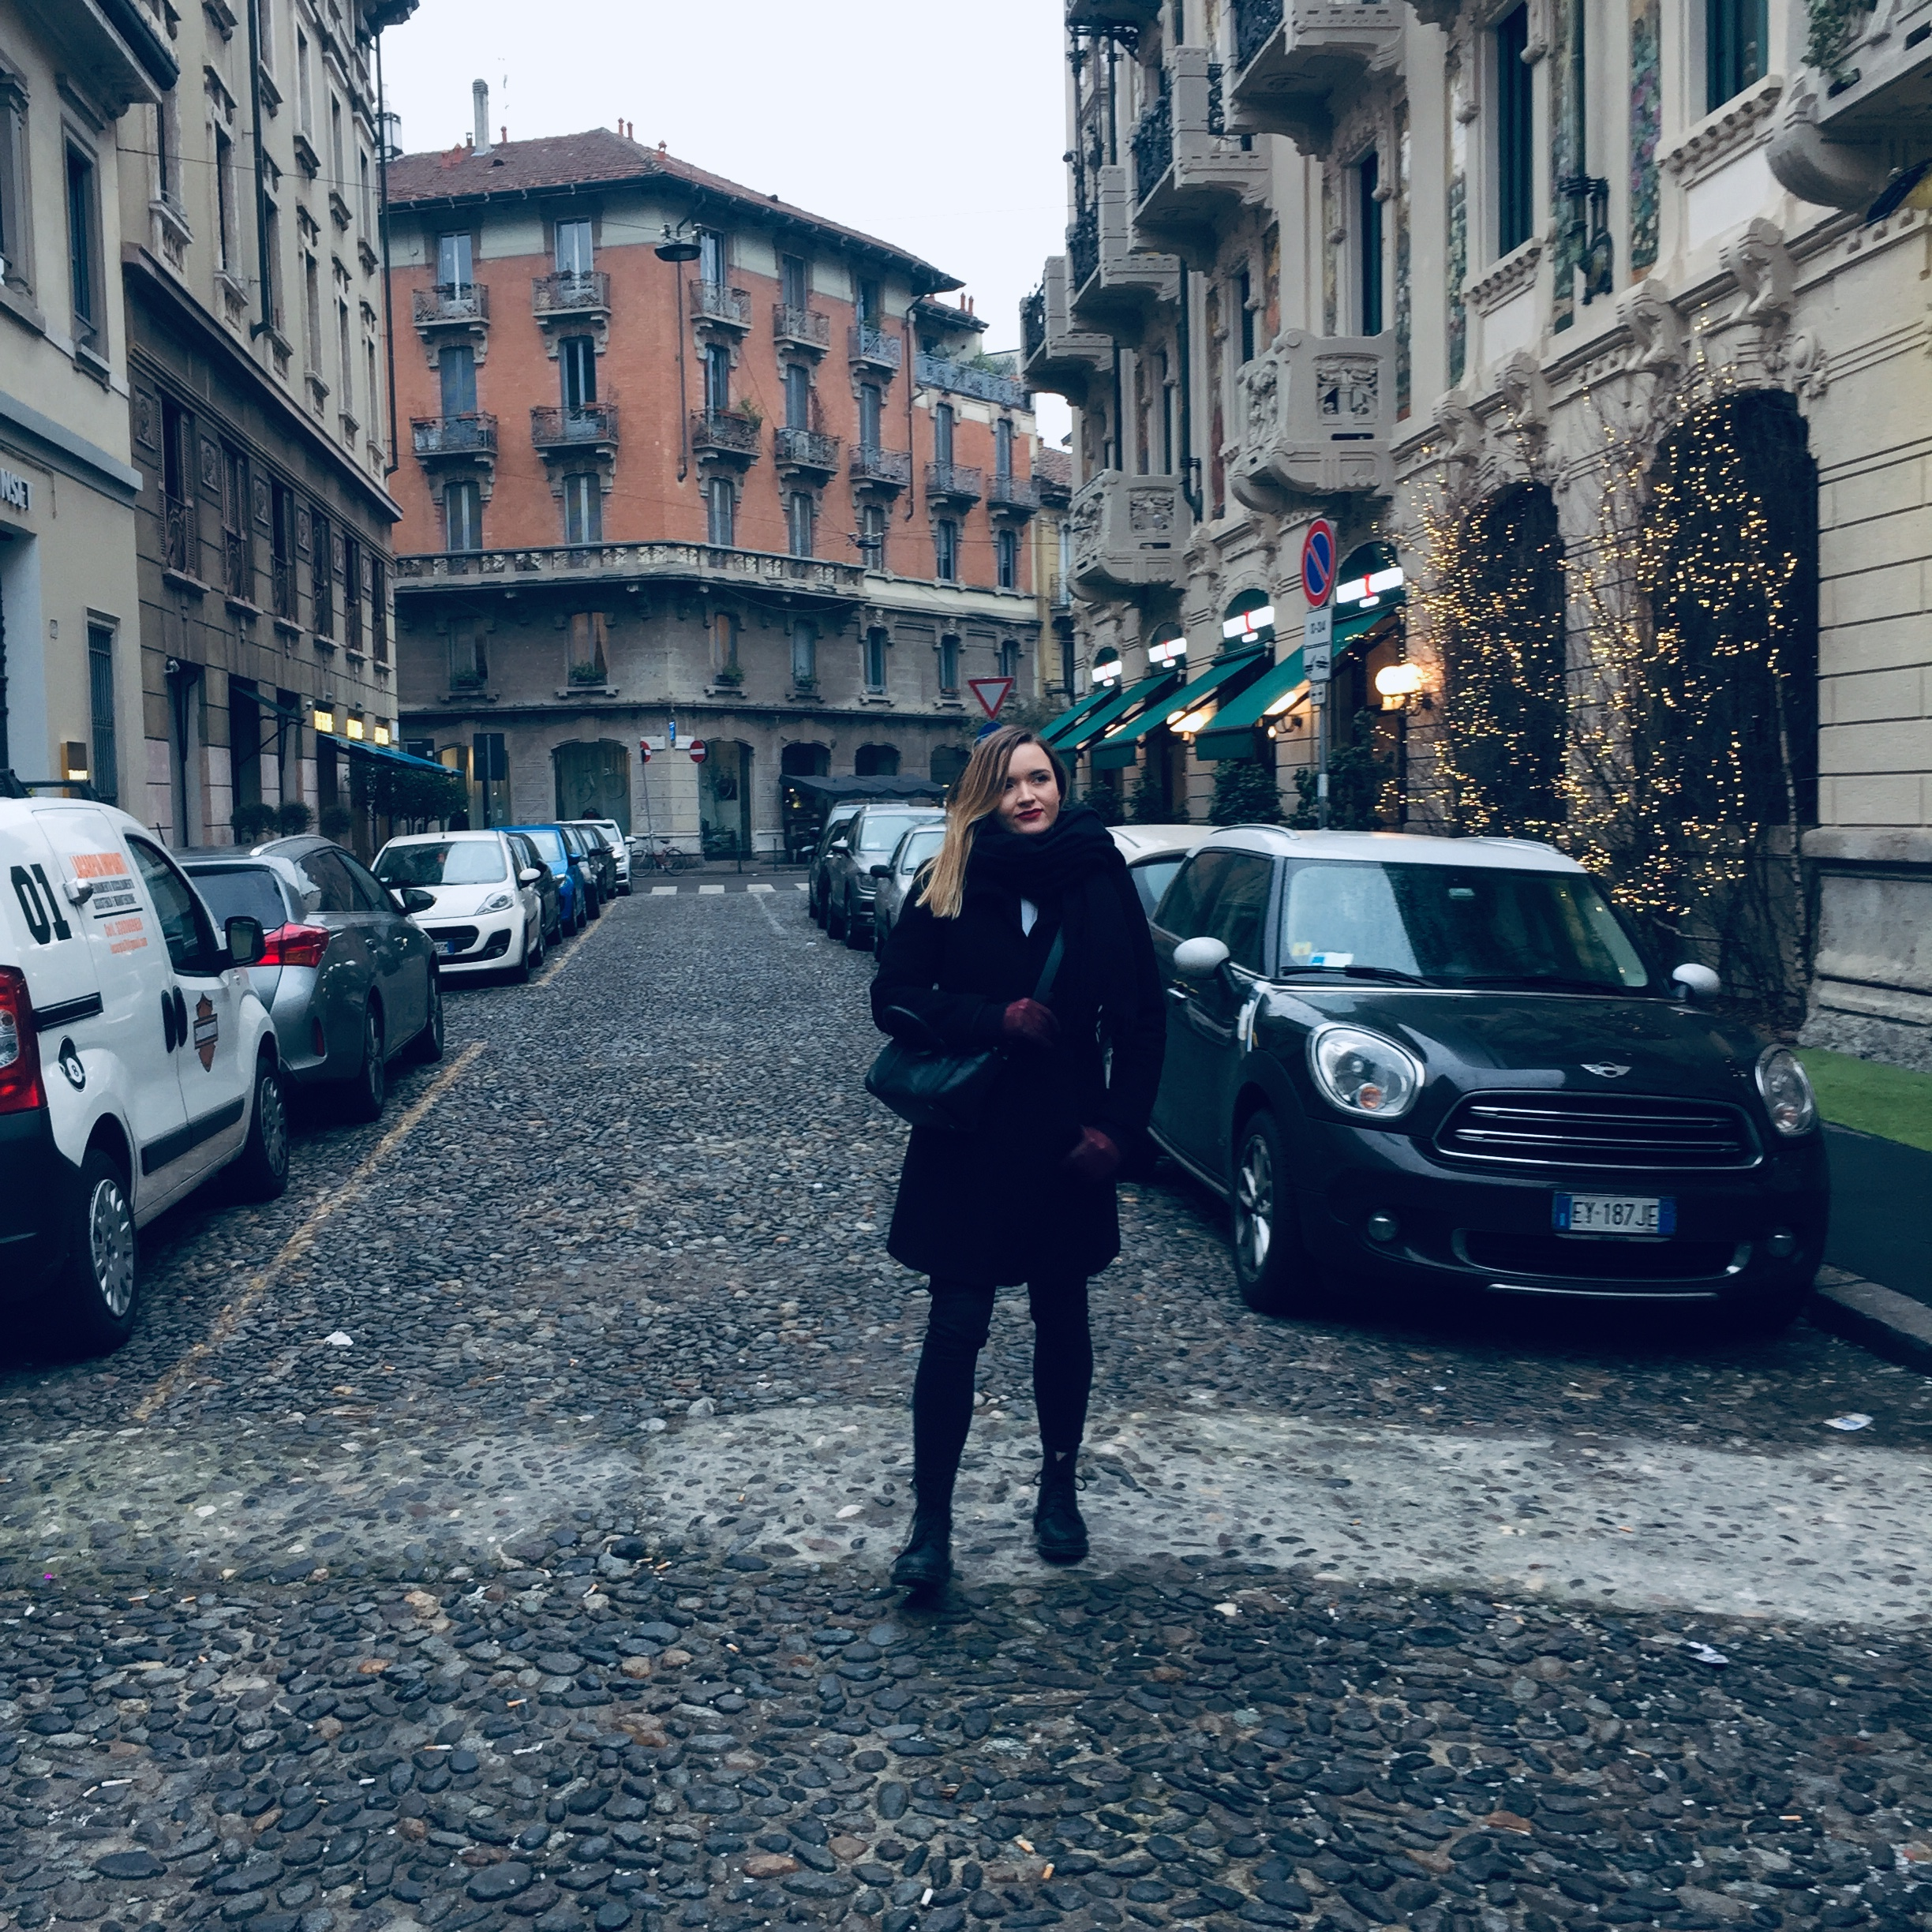 it may be January in Milan, but walking around, exploring the city and speaking bad italian is still a lot of fun.